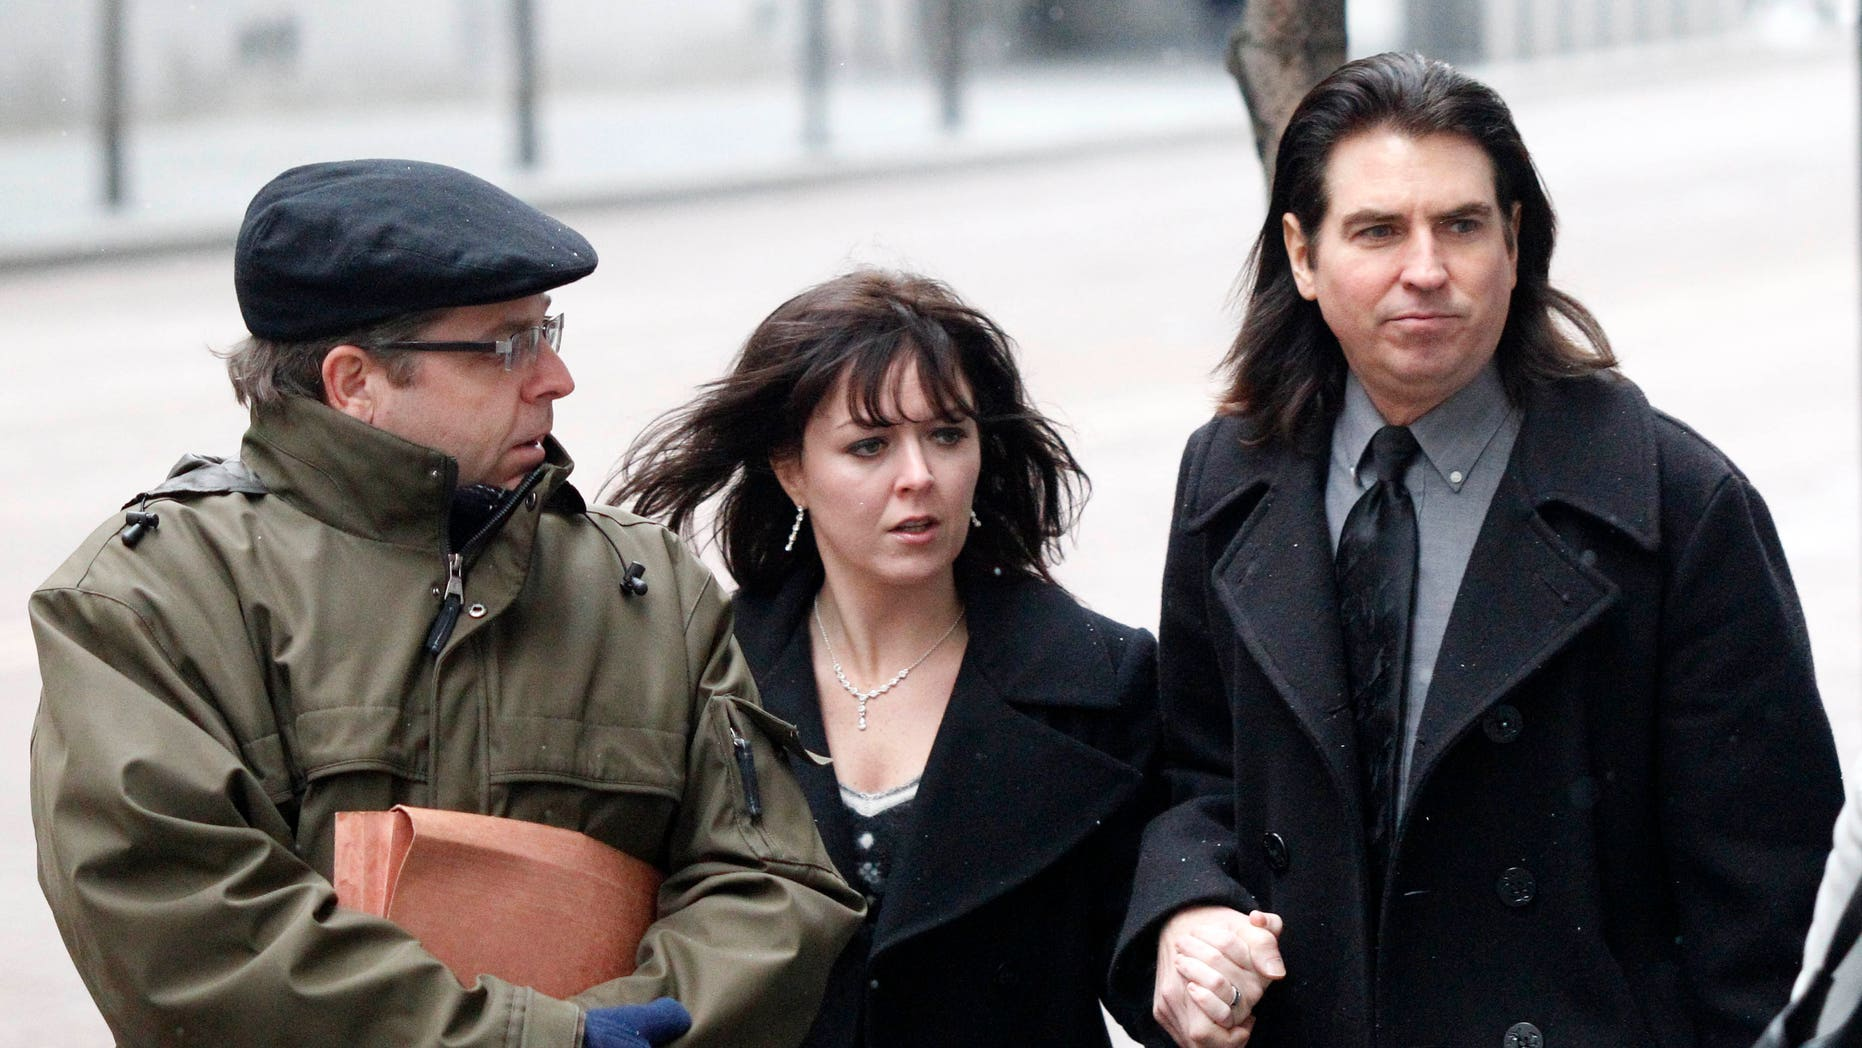 Jan. 6: Shawn Begolly, right, walks to federal court for a detention hearing for his son, Emerson Begolly with his wife, Tiffani, center, and a public defender investigator, in Pittsburgh. Emerson Begolly is being held on charges he bit two FBI agents while carrying a loaded gun on Jan. 4.